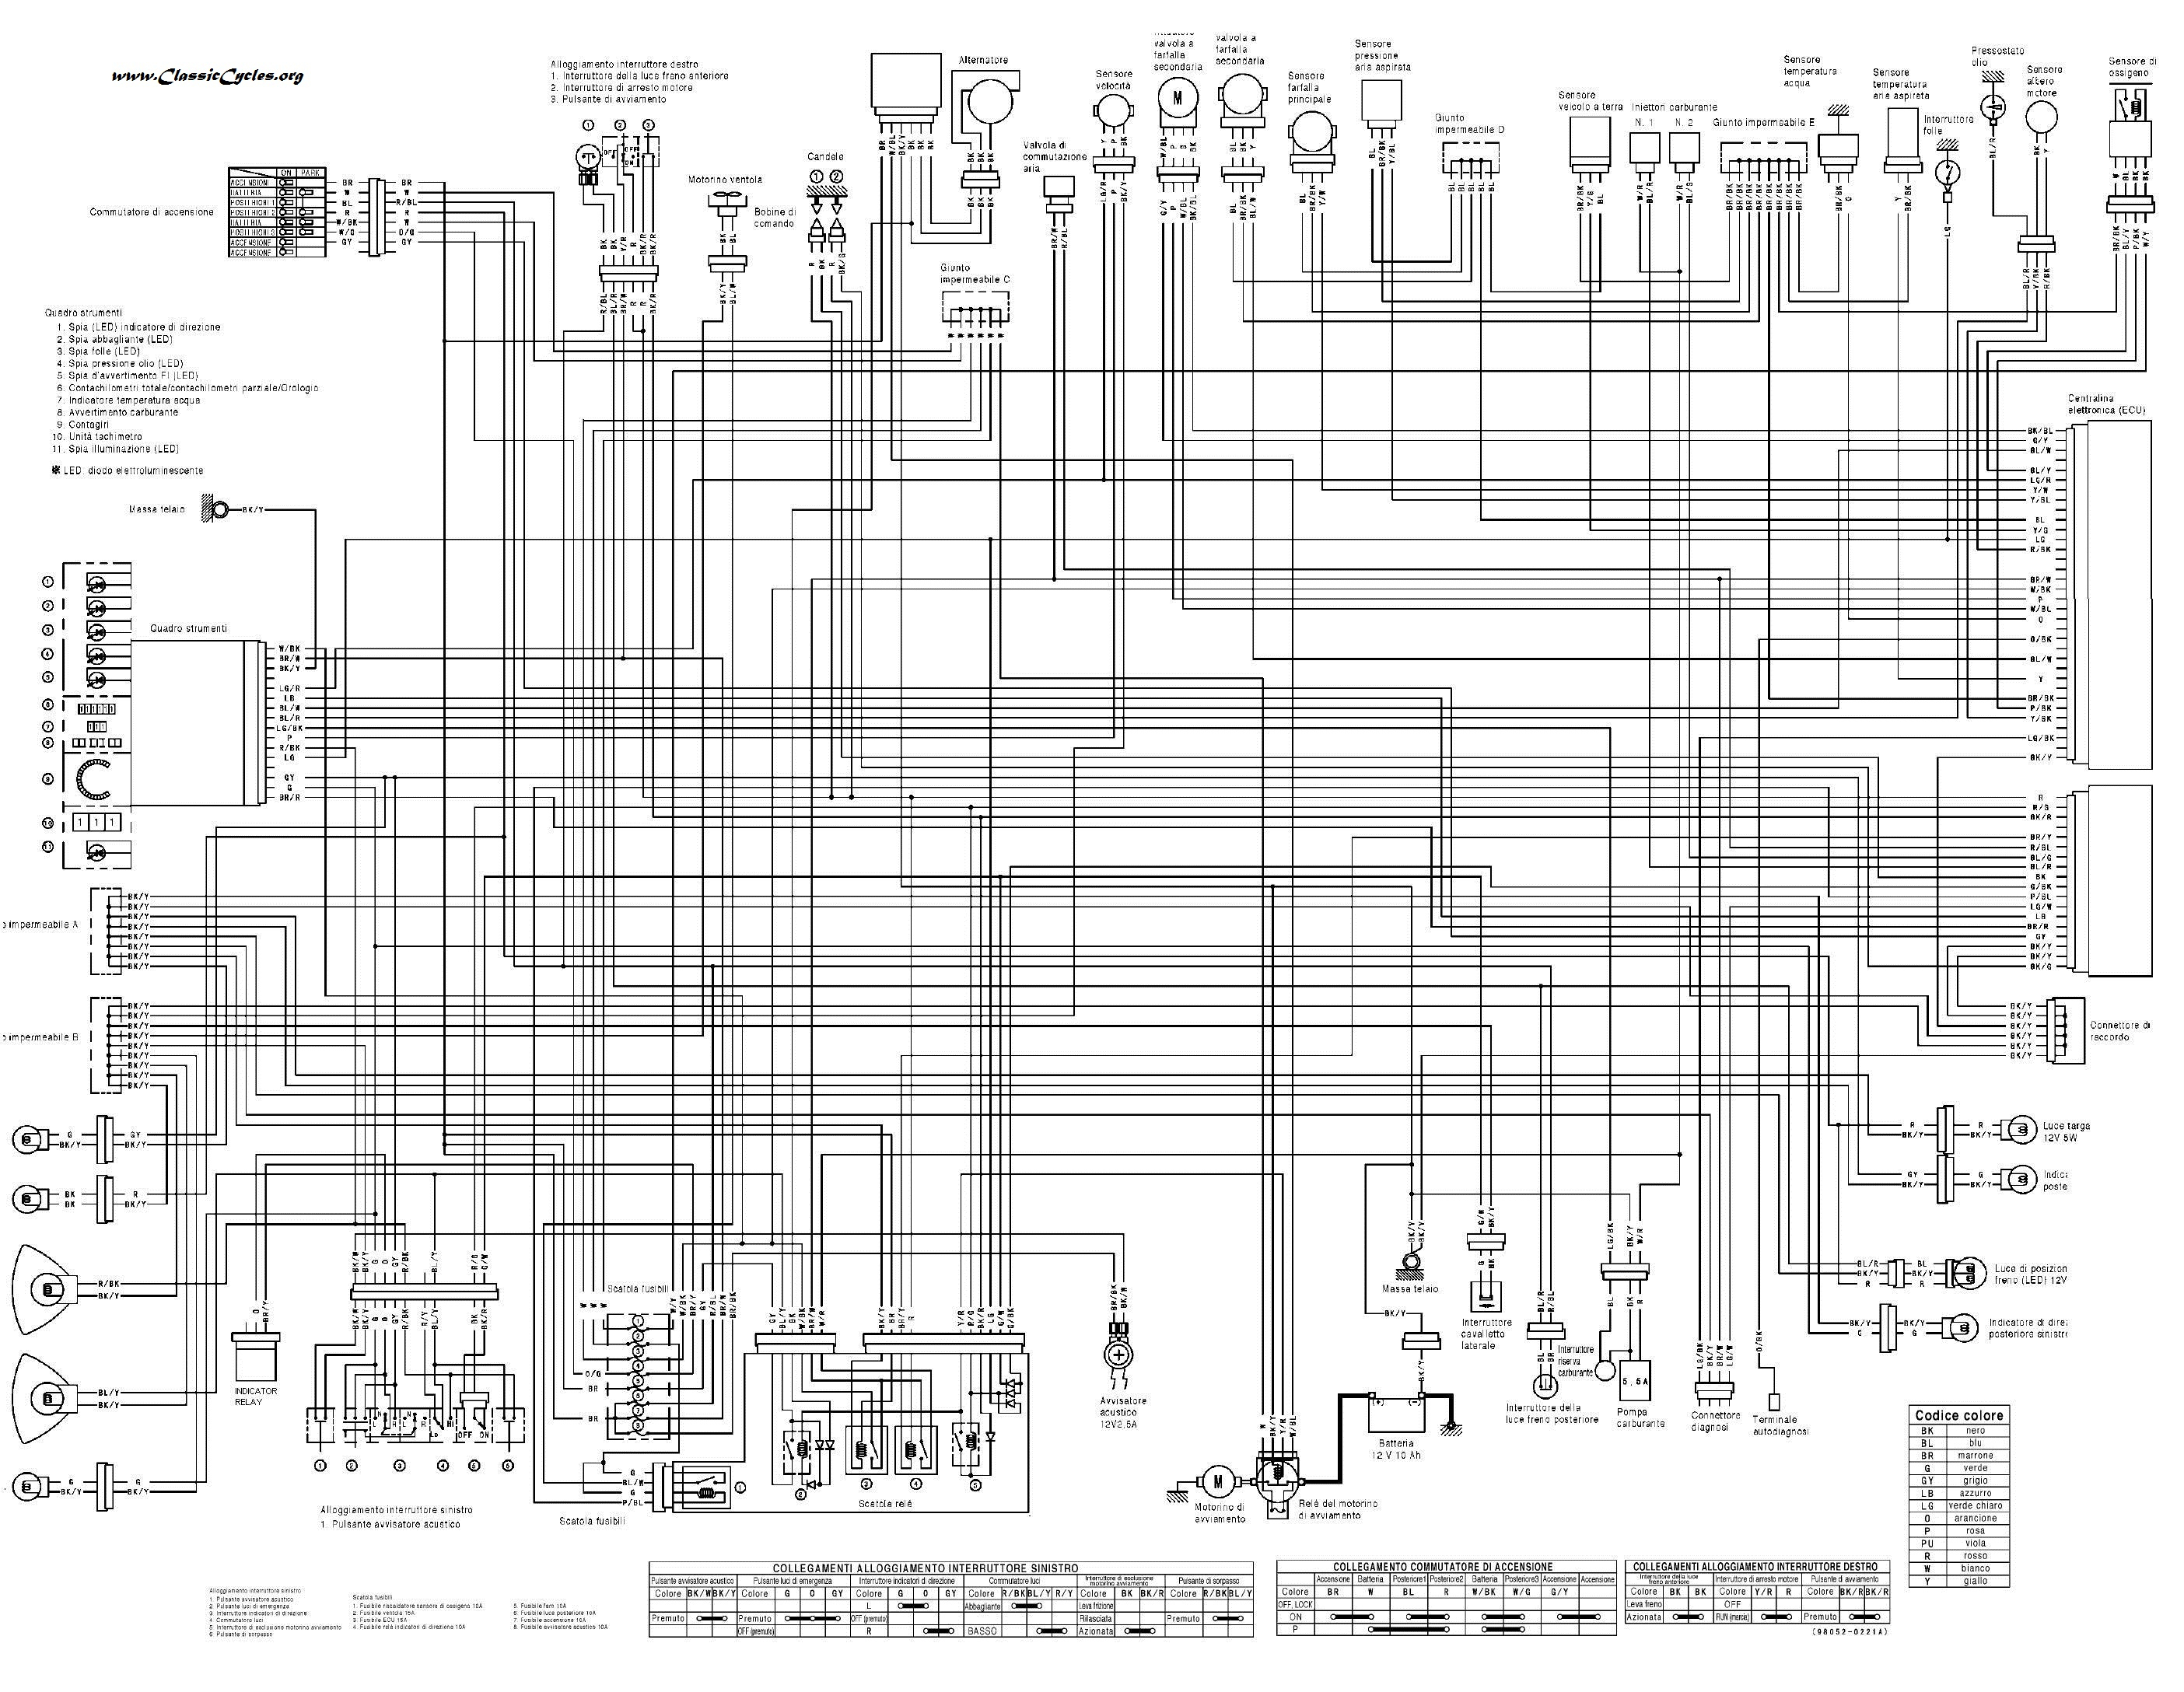 Wiring Harness Diagram - Data Wiring Diagram Schematic - Wiring Harness Diagram